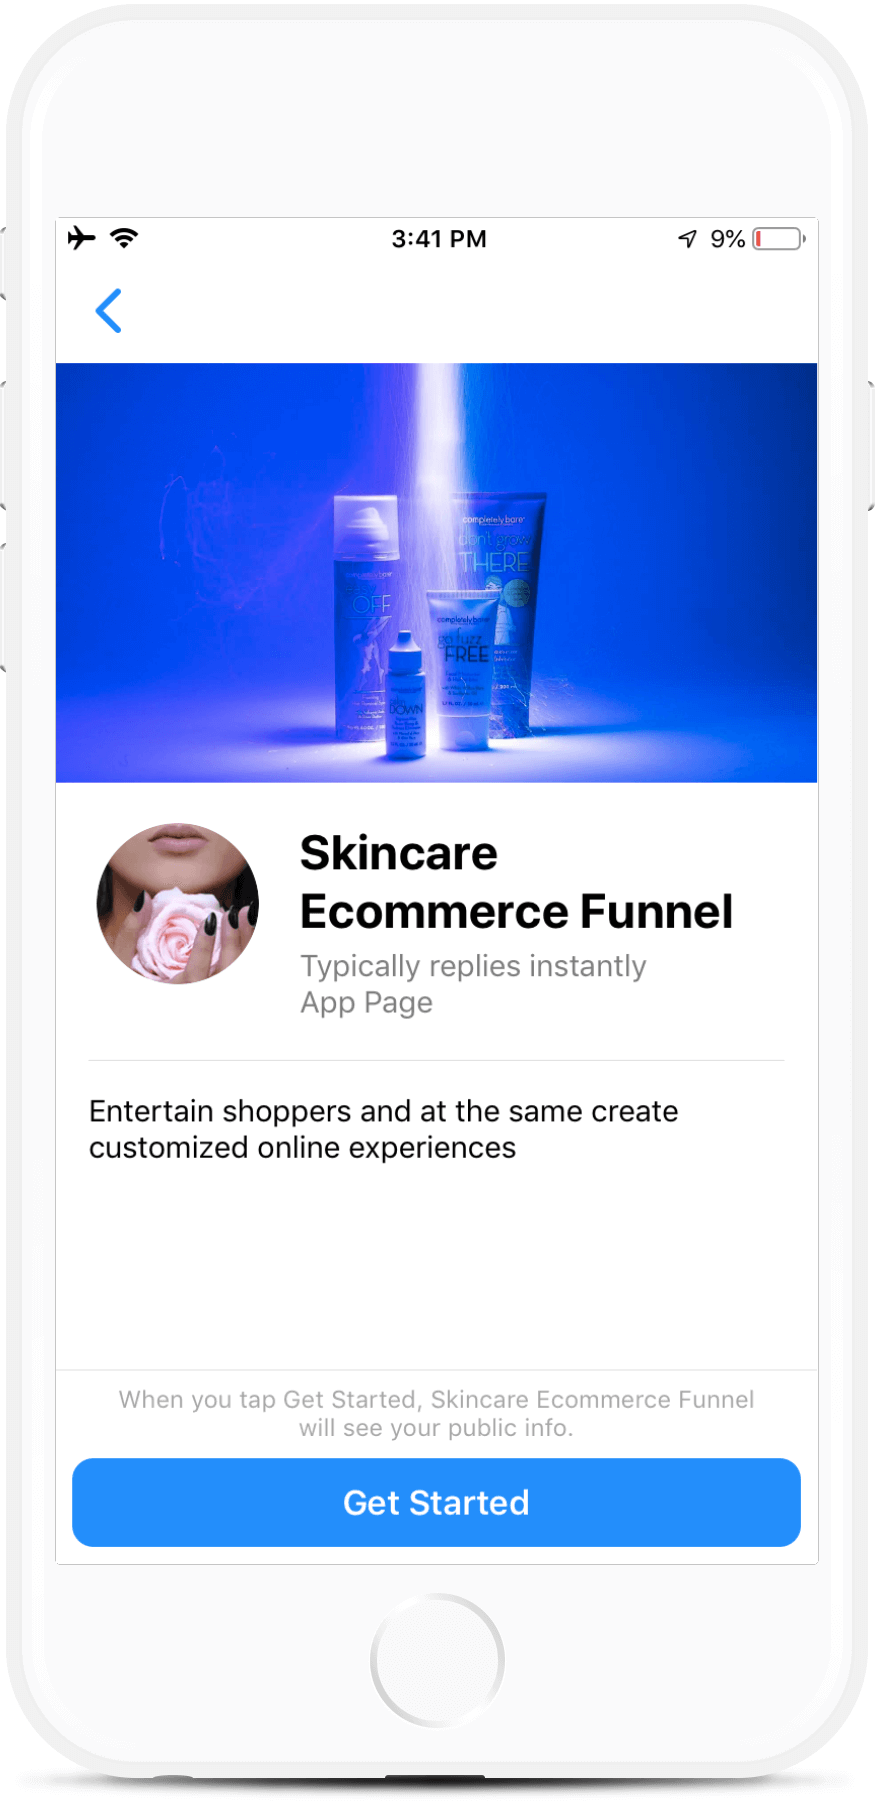 Skincare eCommerce Funnel for Facebook Messenger